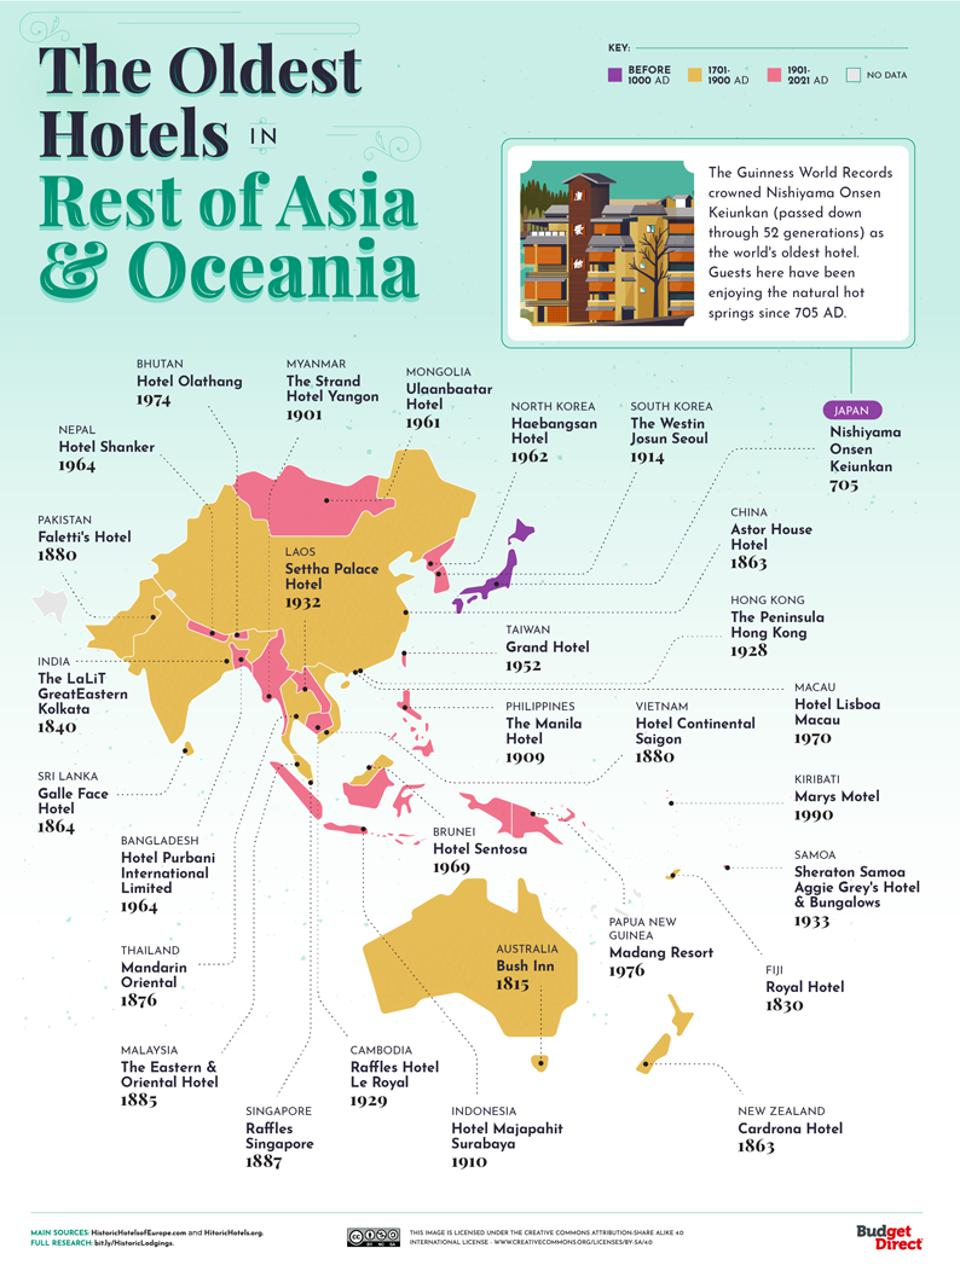 Map of Asia and Oceania showing the oldest hotels in each country